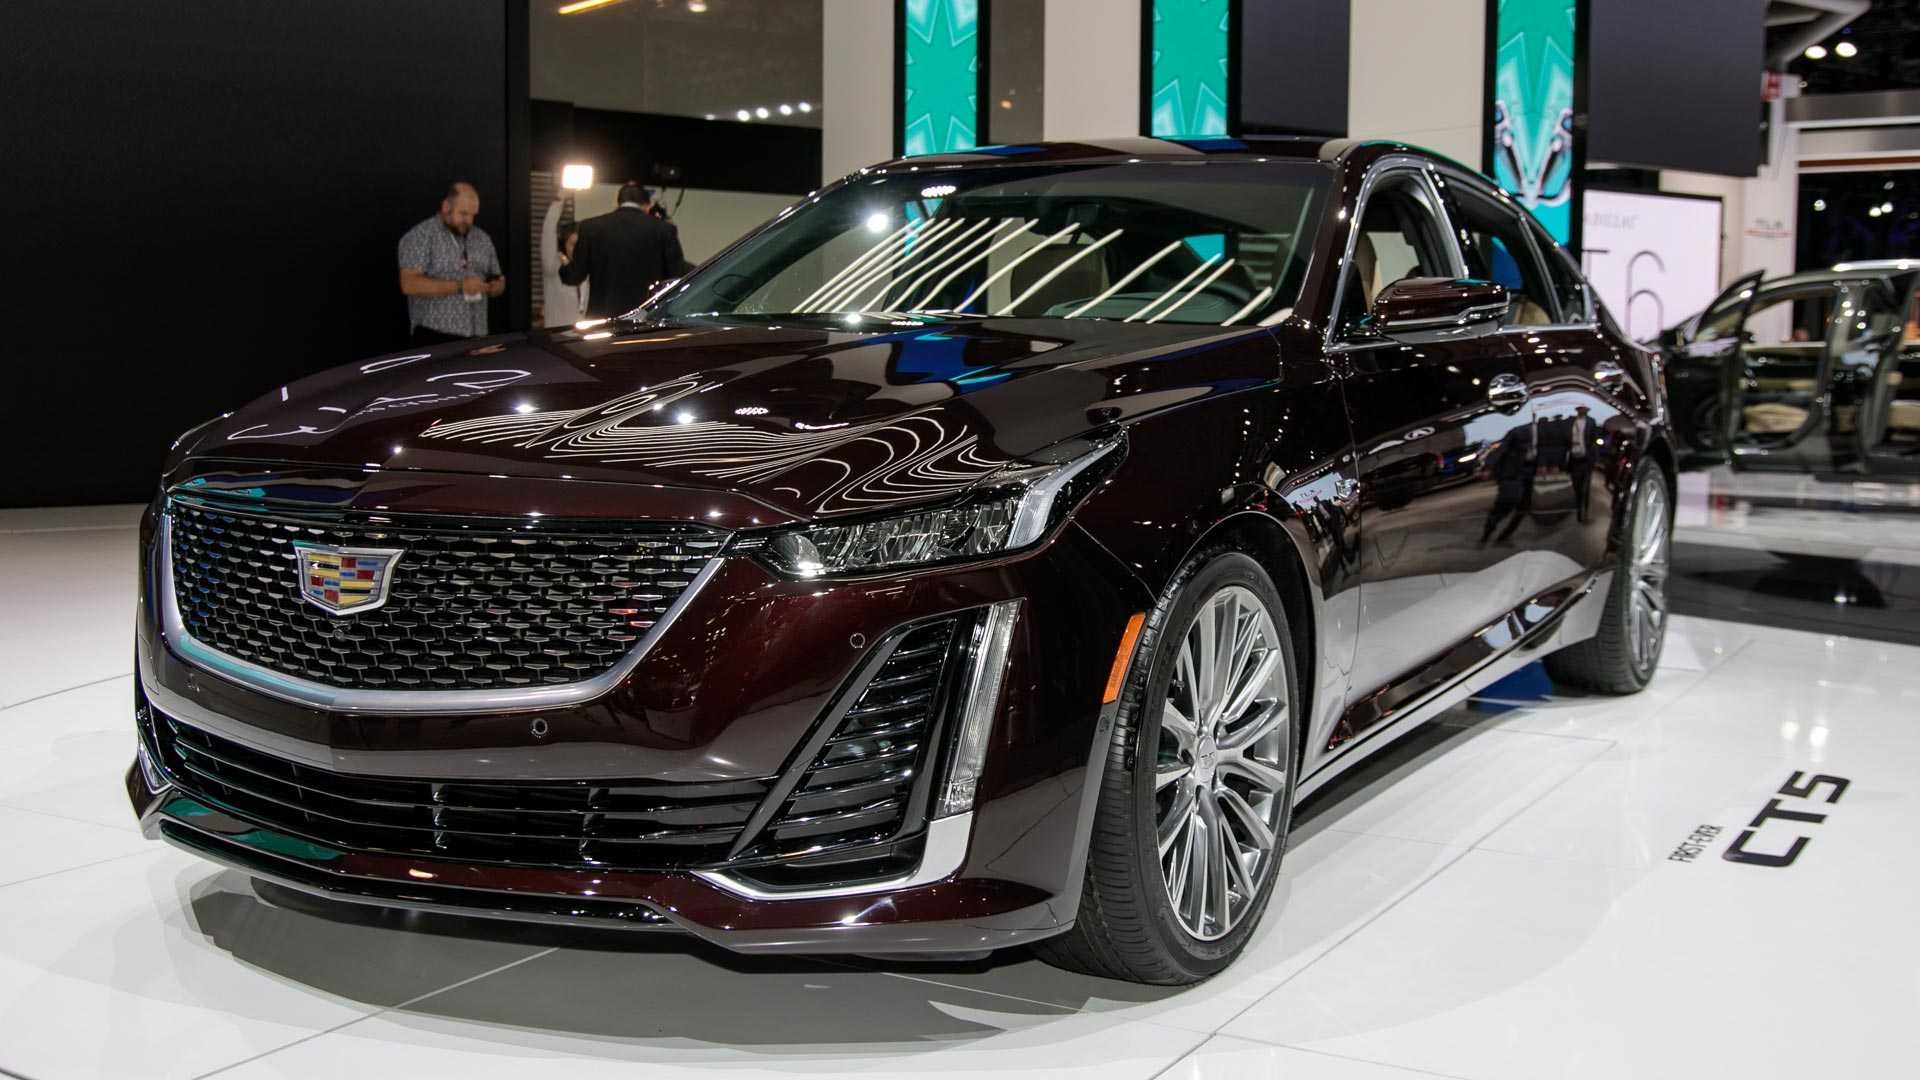 63 A 2020 Cadillac Ct5 Release Date Rumors